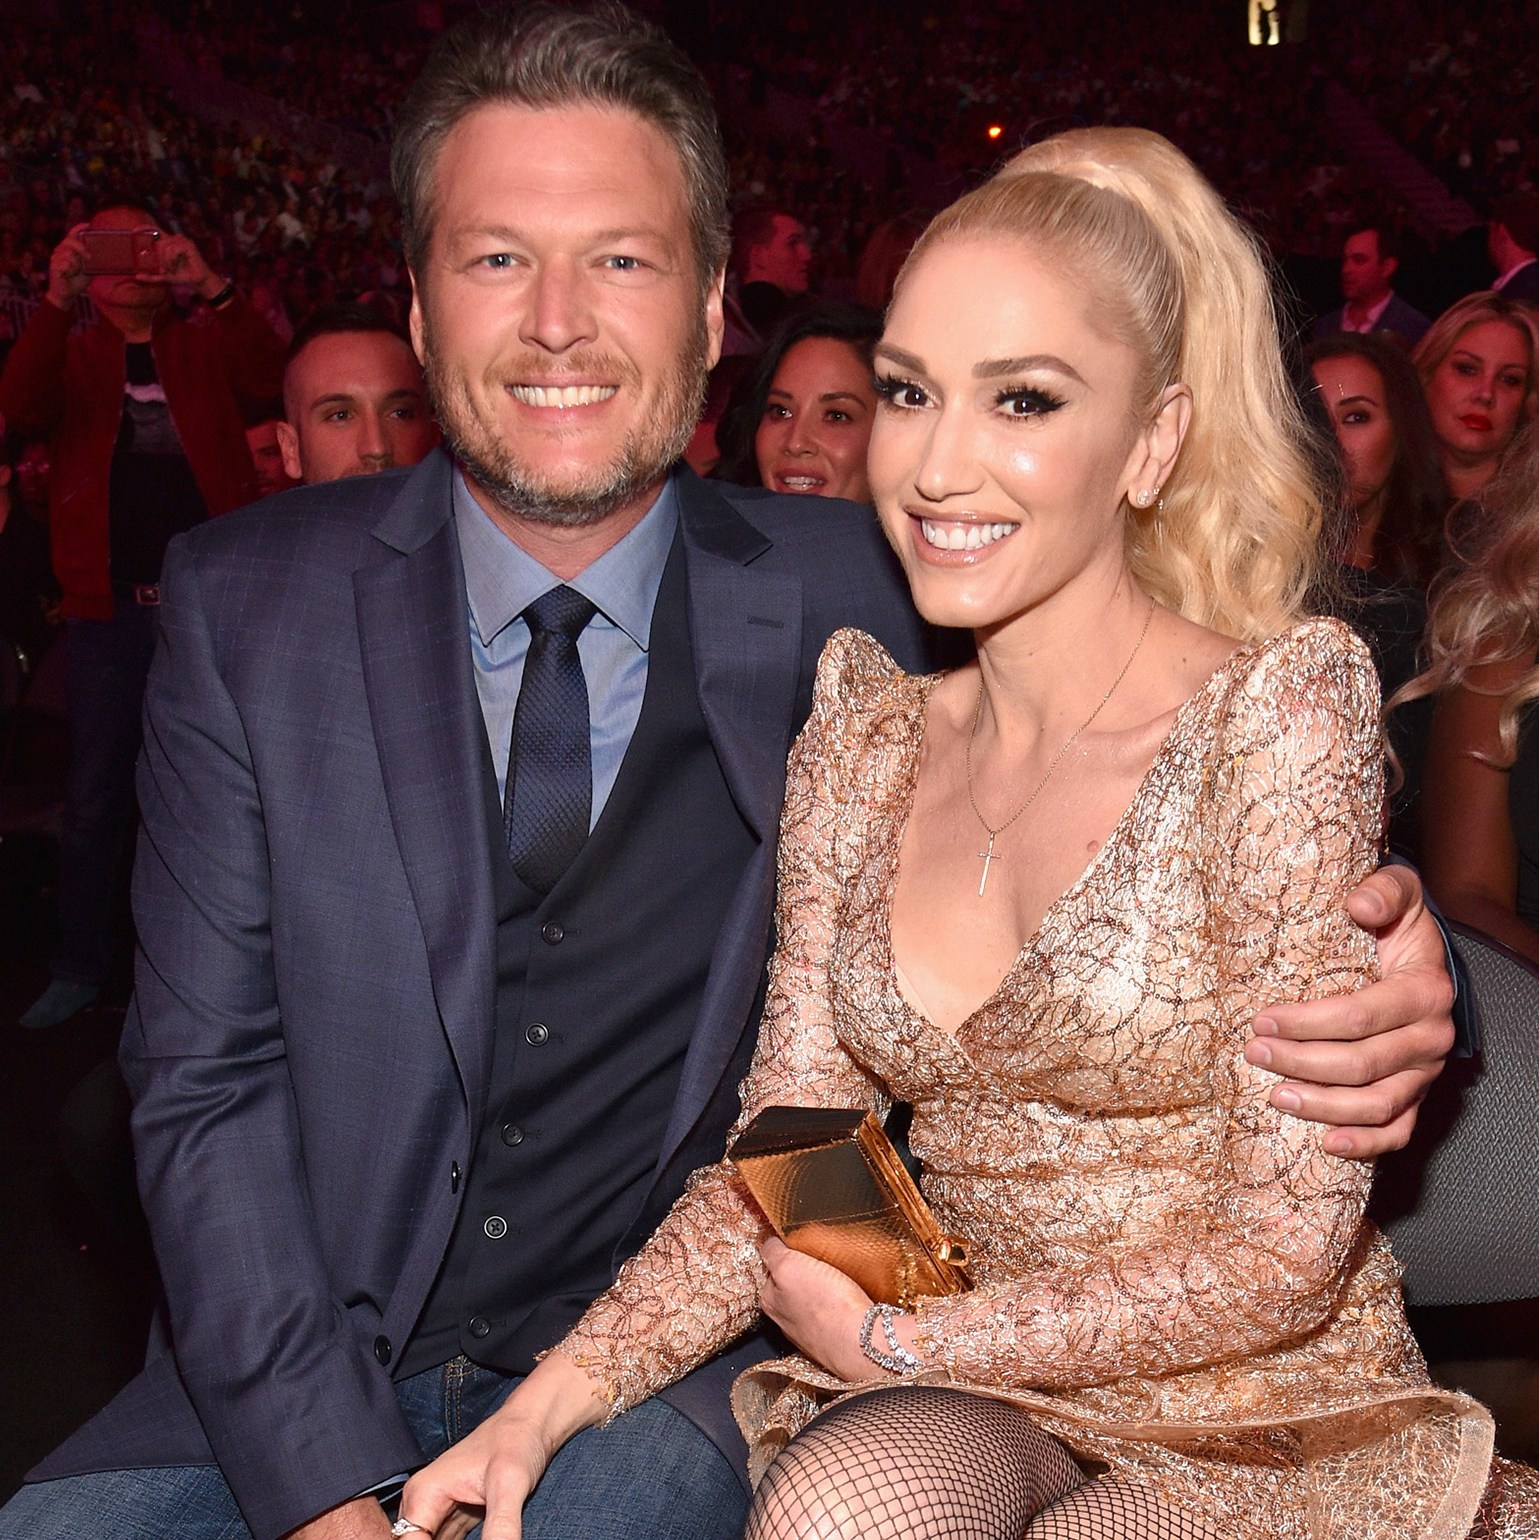 Blake Shelton and Gwen Stefani surrogate